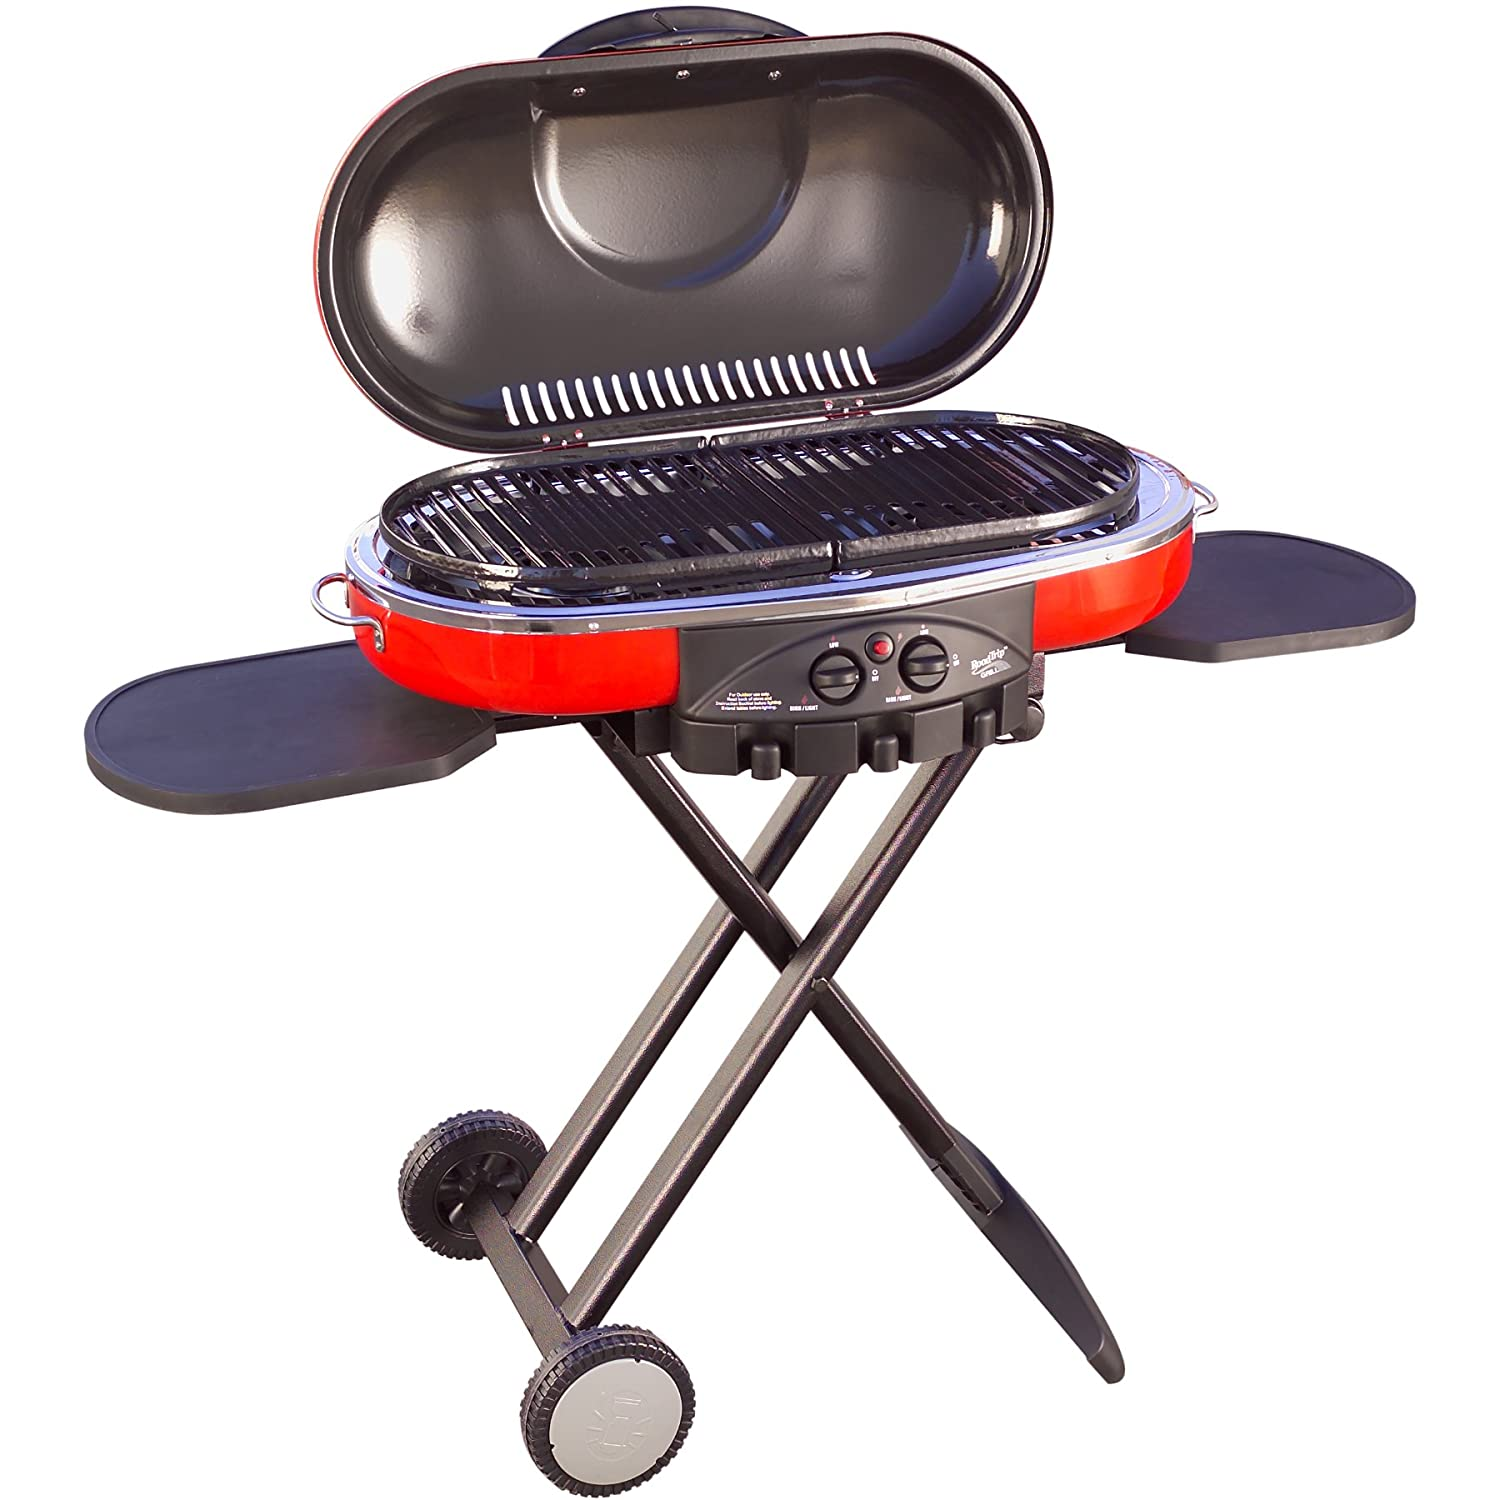 huntington cast series 24025 gas grill